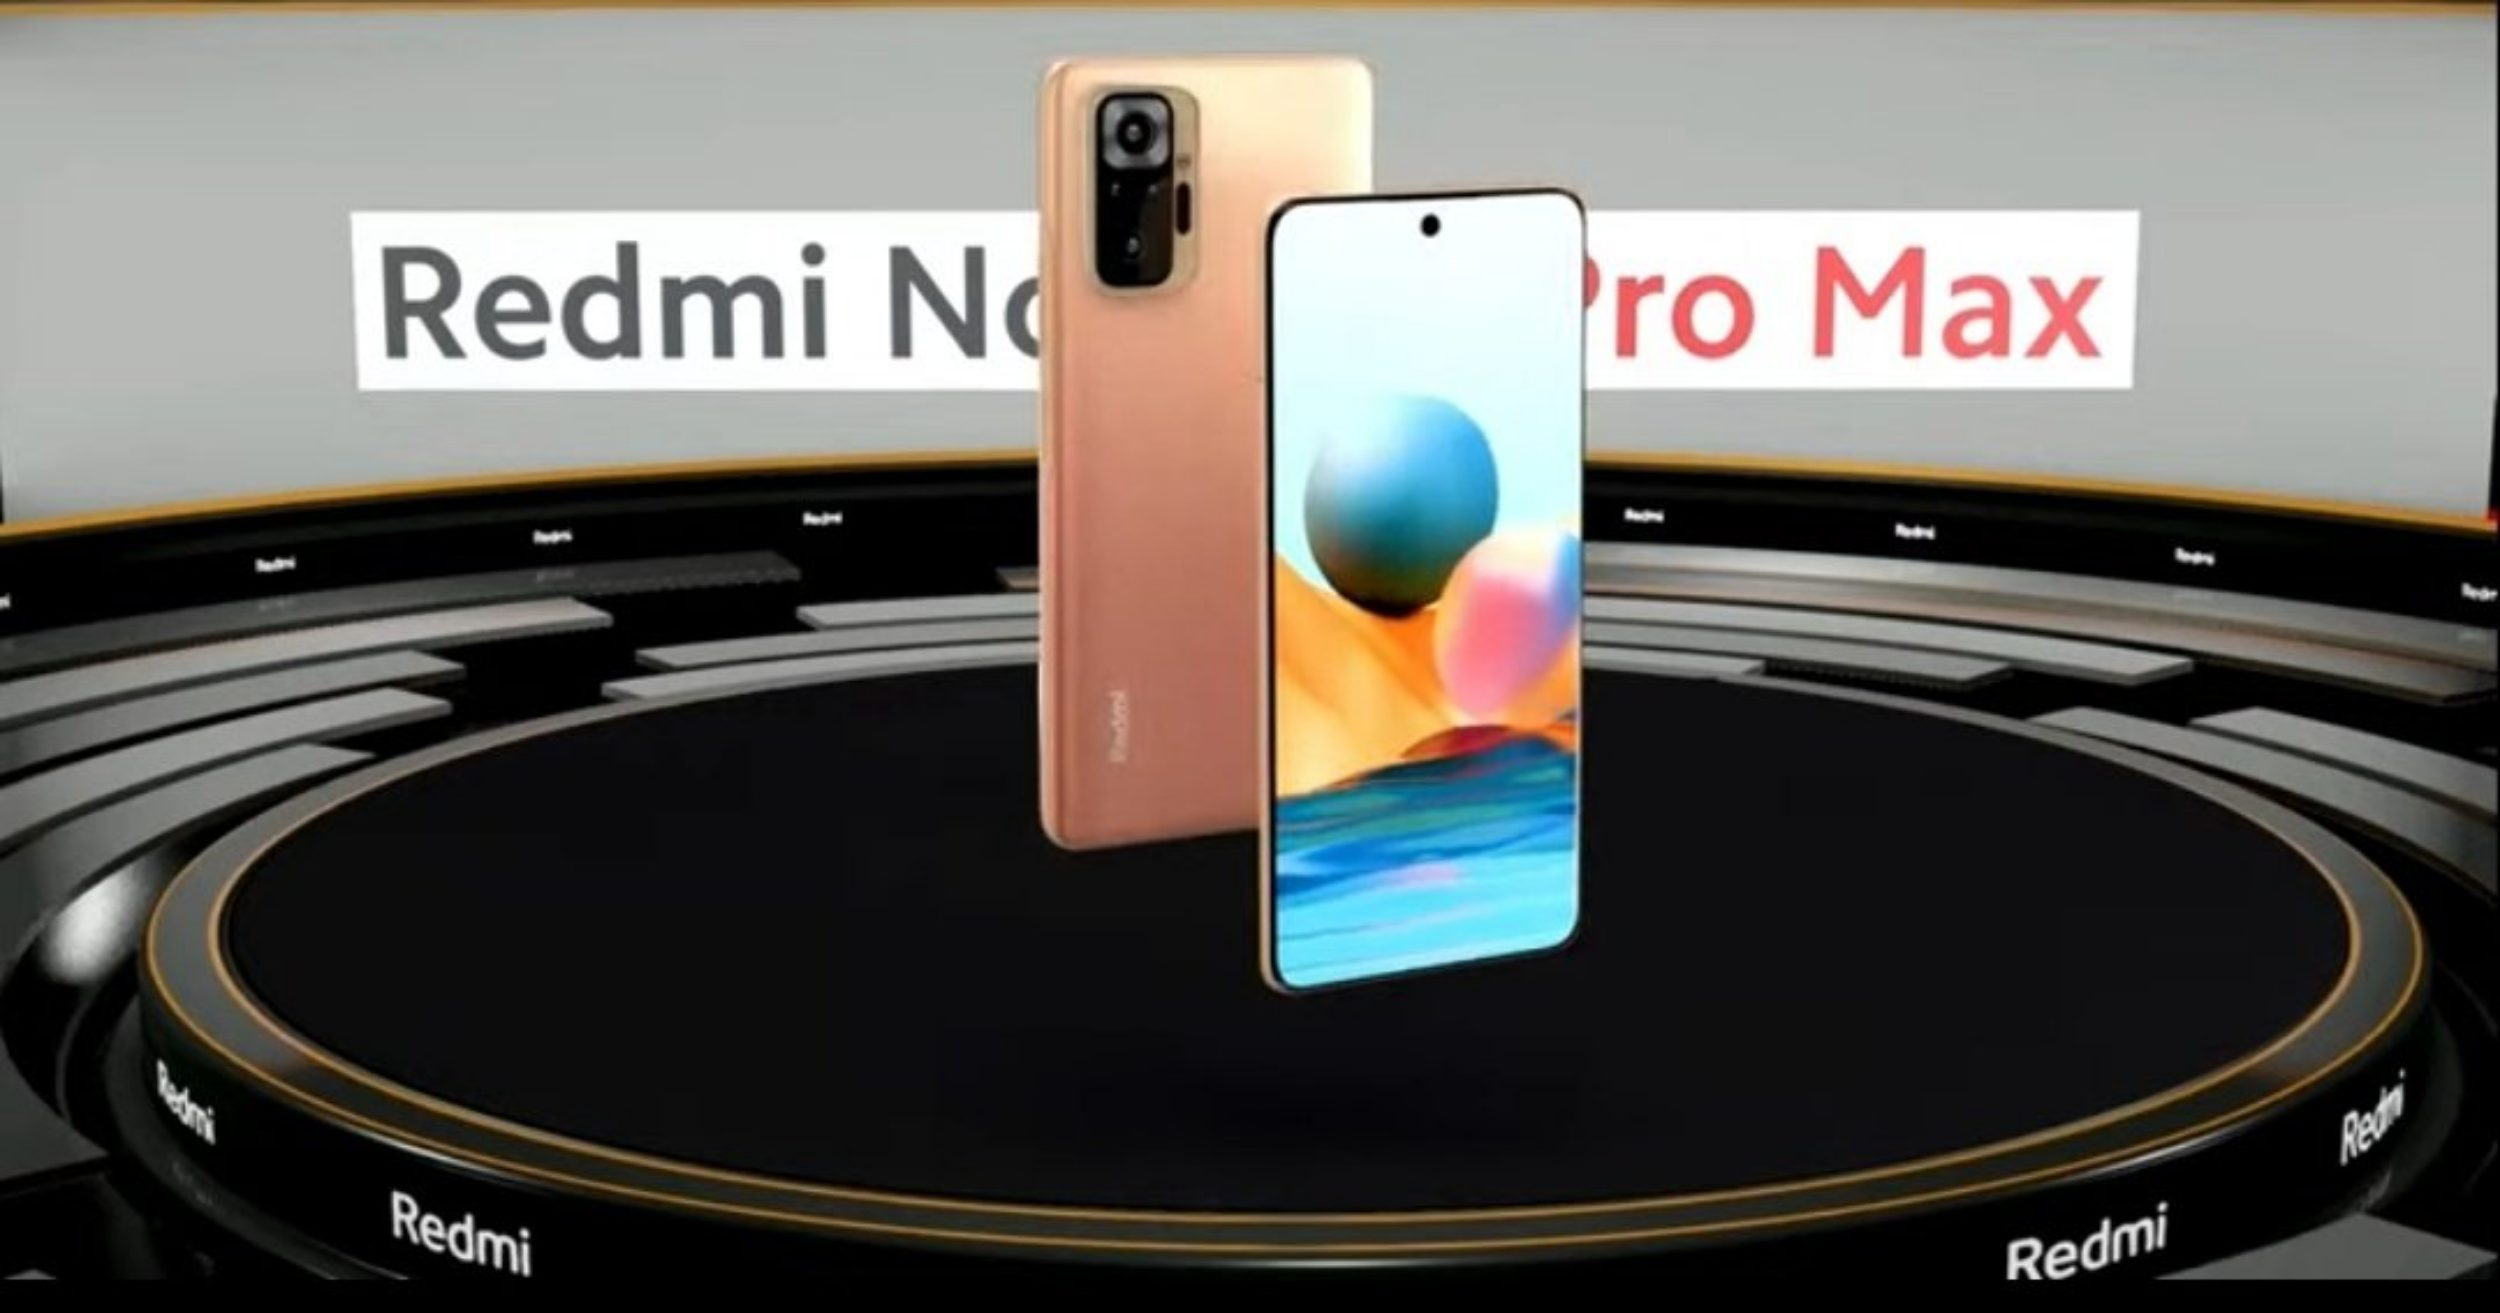 redmi-note-10-pro-max-official-price-specs-release-date-availability-philippines